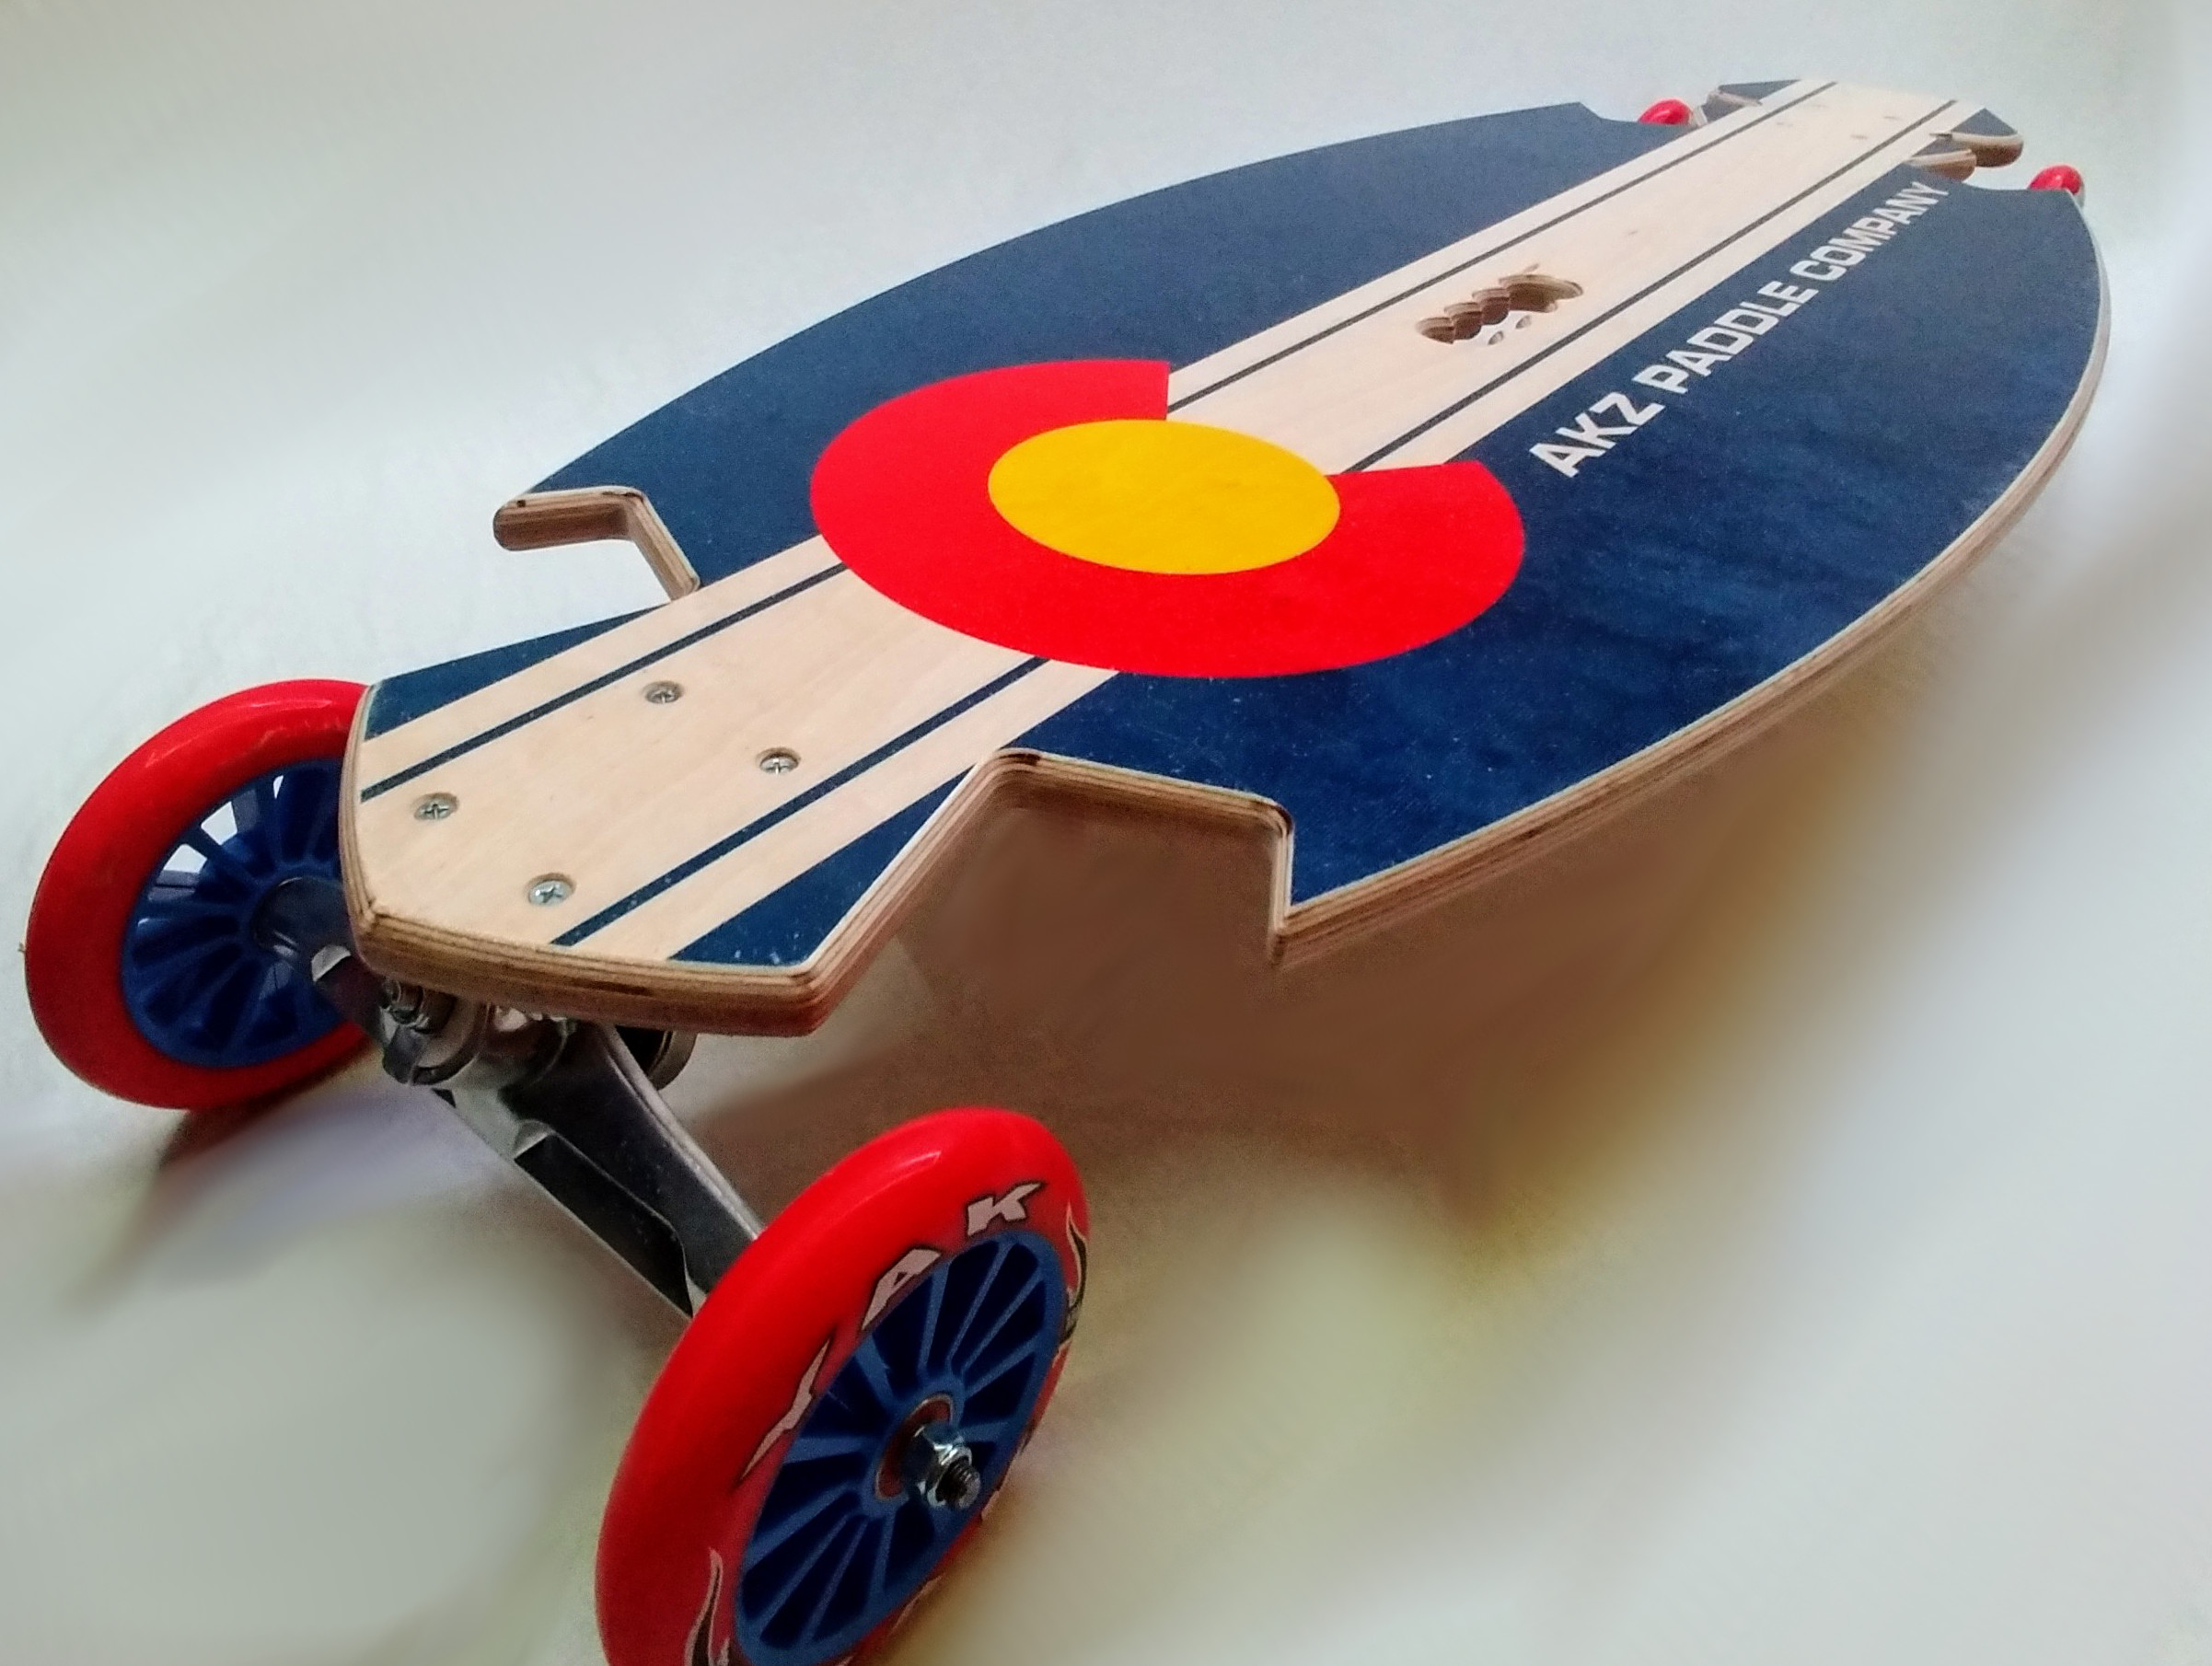 Land Paddle Surf Board Stretch Colorado LF Quarter.jpg